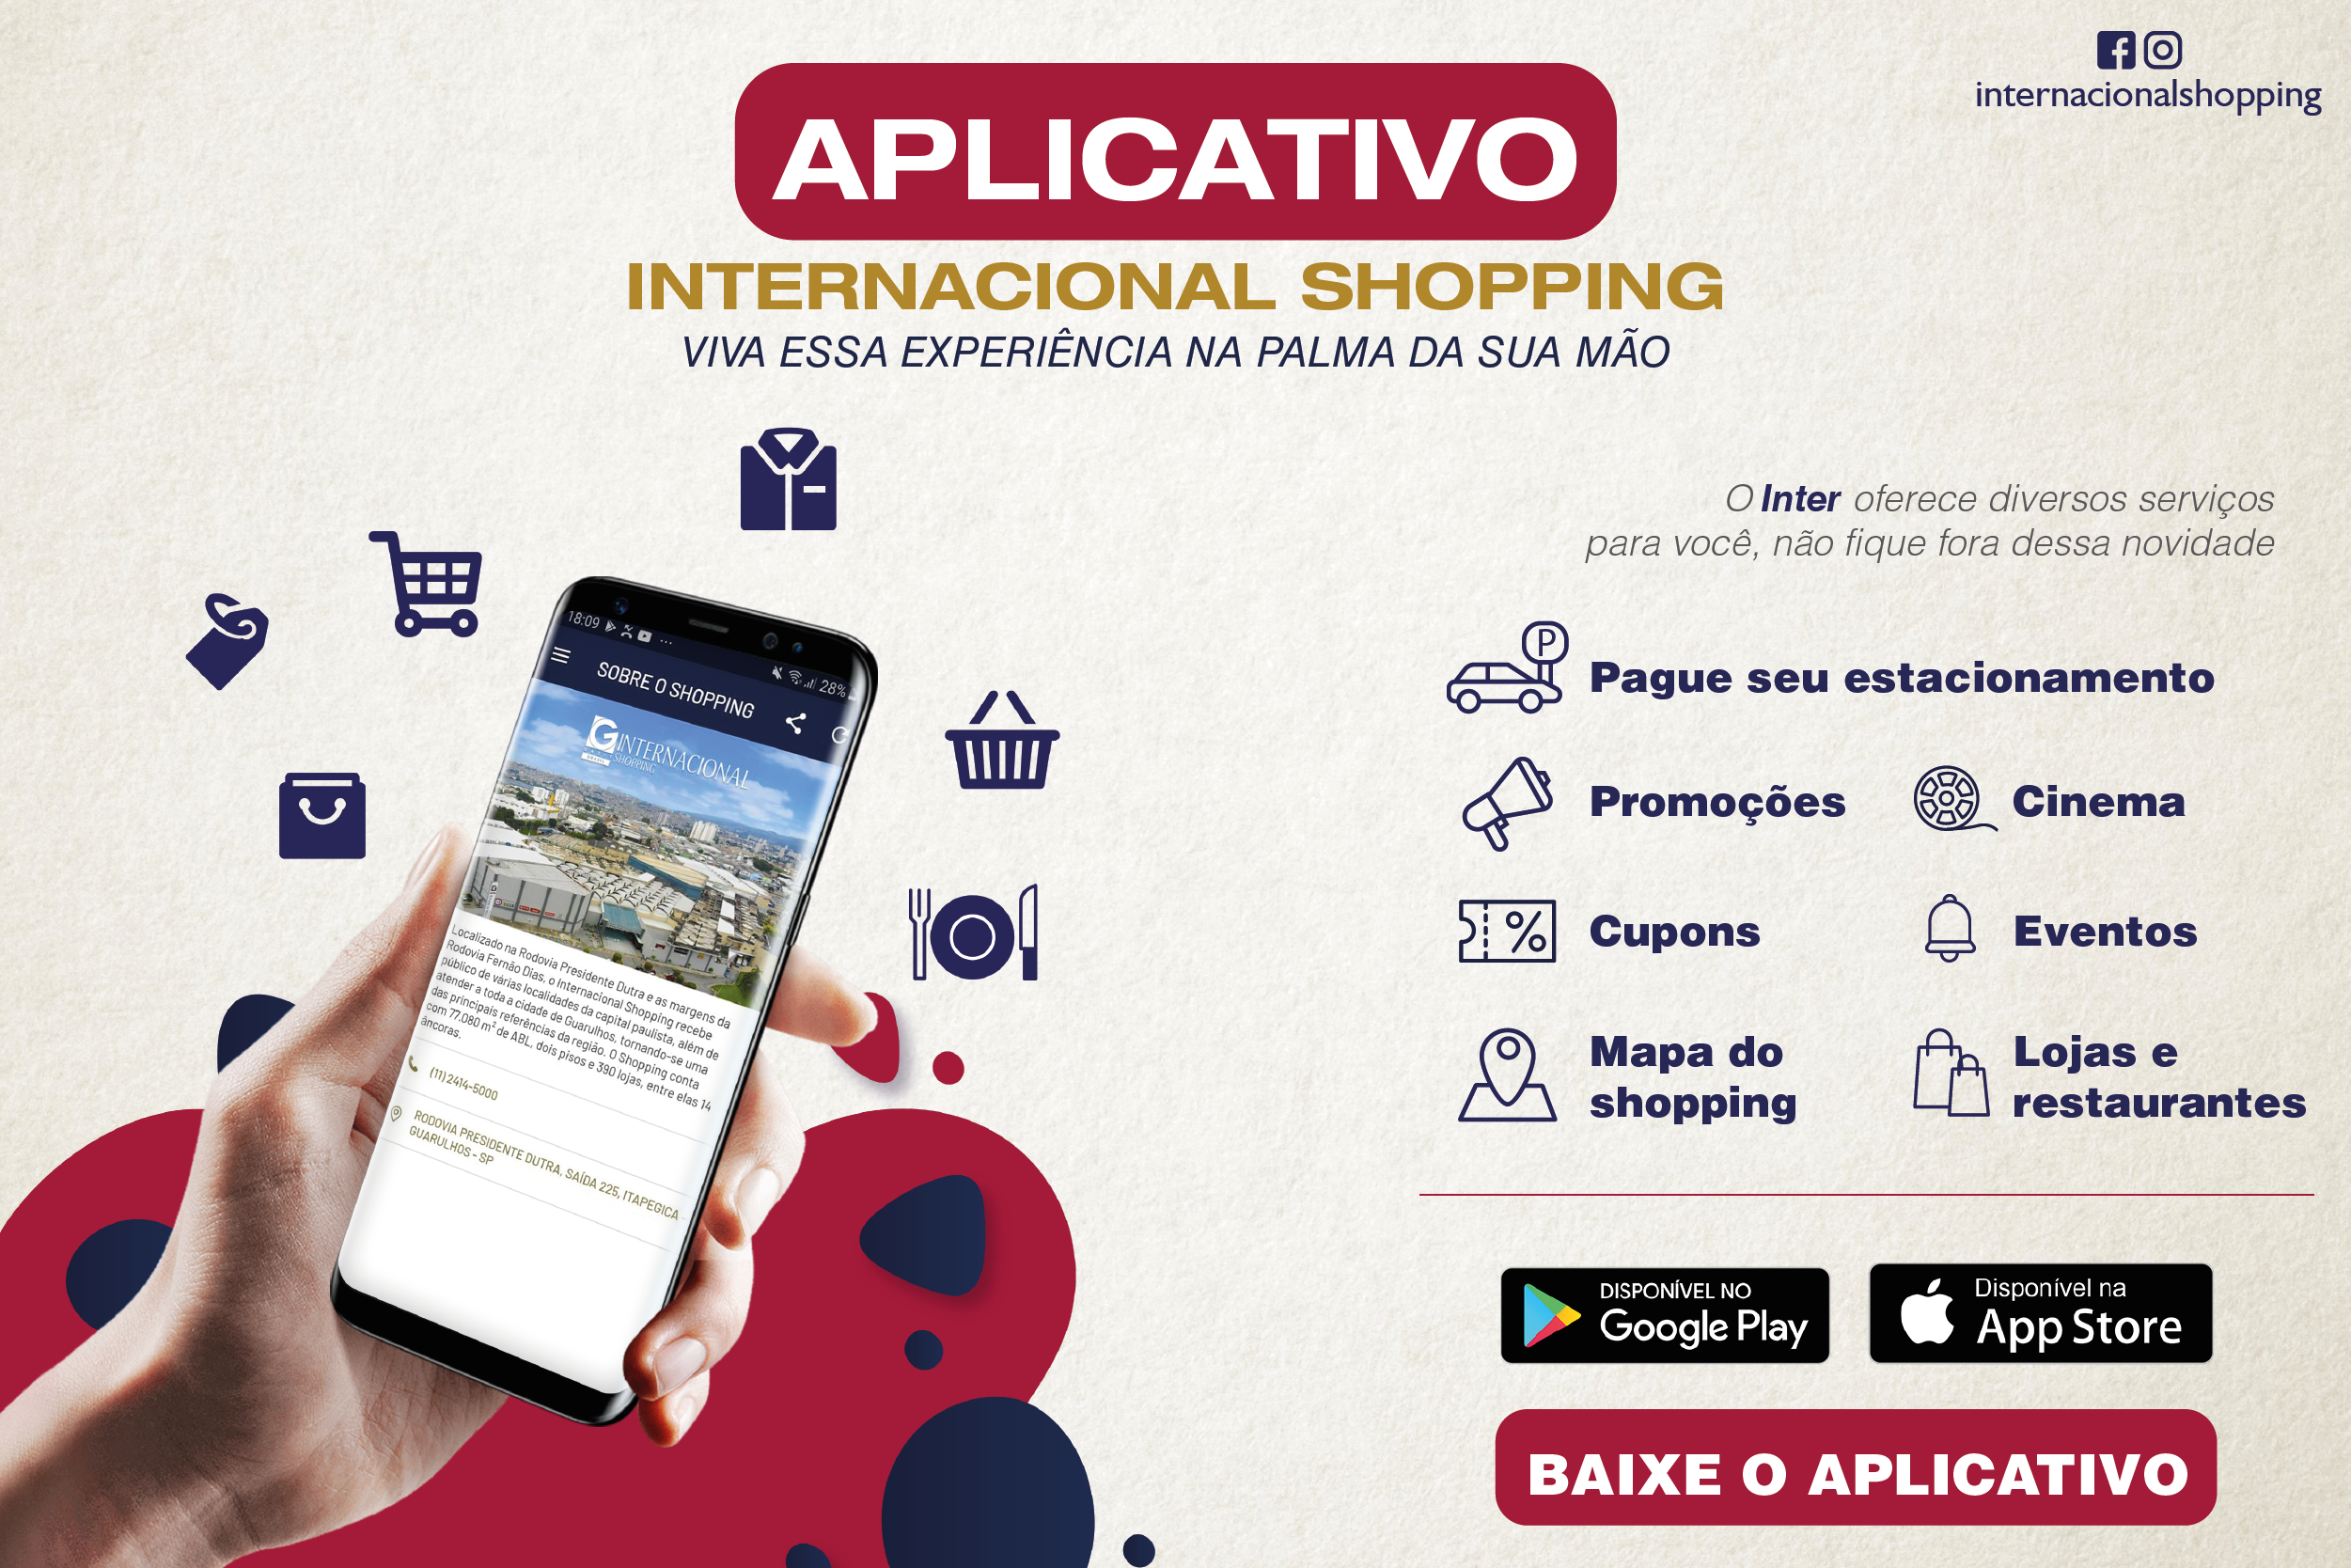 Aplicativo Internacional Shopping